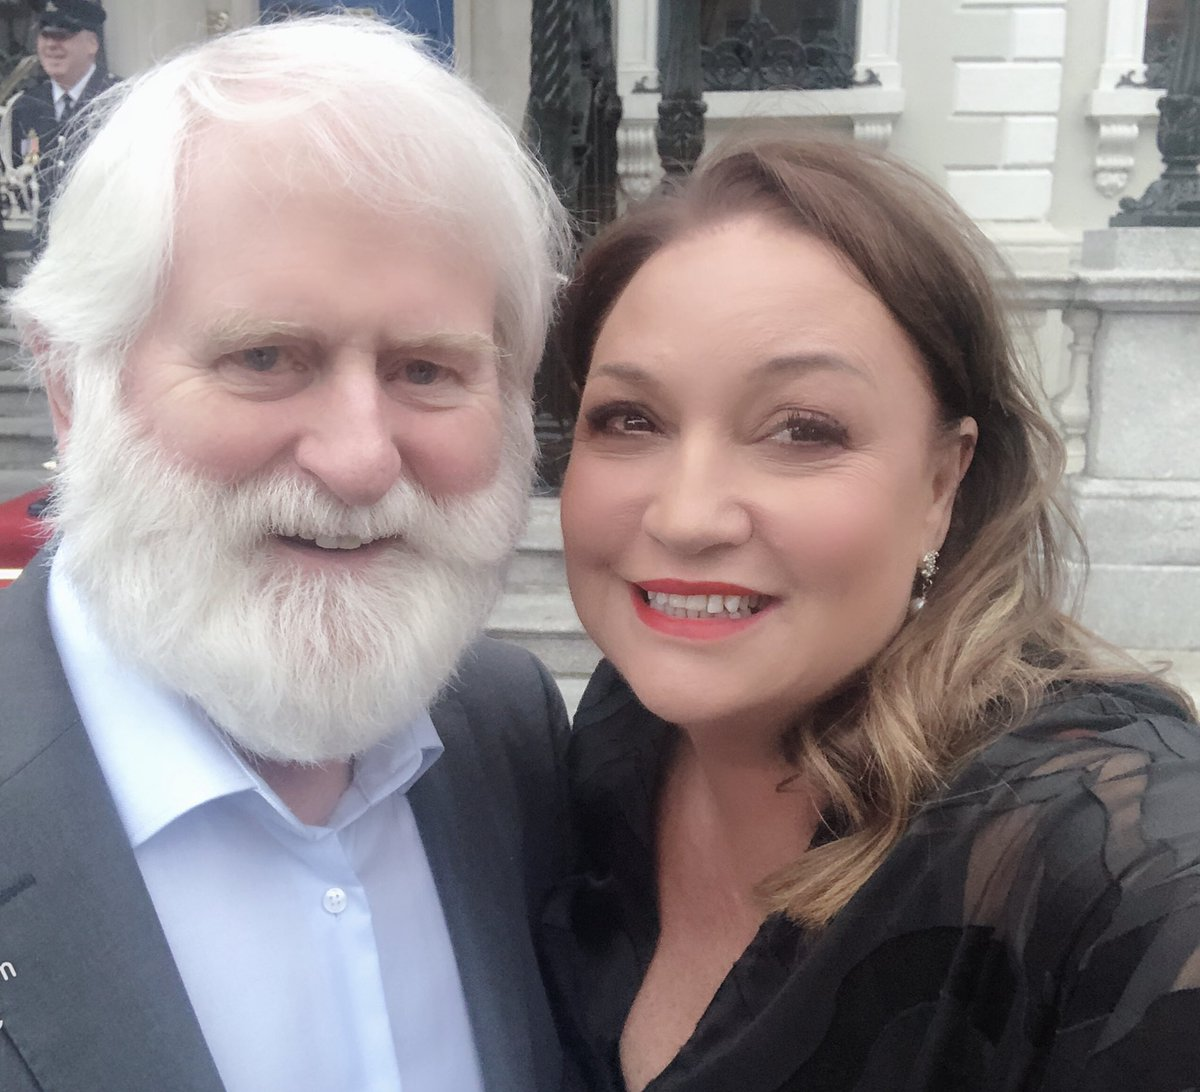 This man and me - sometimes I have to pinch myself... together for @LordMayorDublin awards .. but so many connections- our first dance (me and Richard) was the Marino Waltz - we last met @MayorofLondon #StPatricksDay a million years ago and here we are tonight @MansionHouseDub<br>http://pic.twitter.com/MLuN3ZMNaj